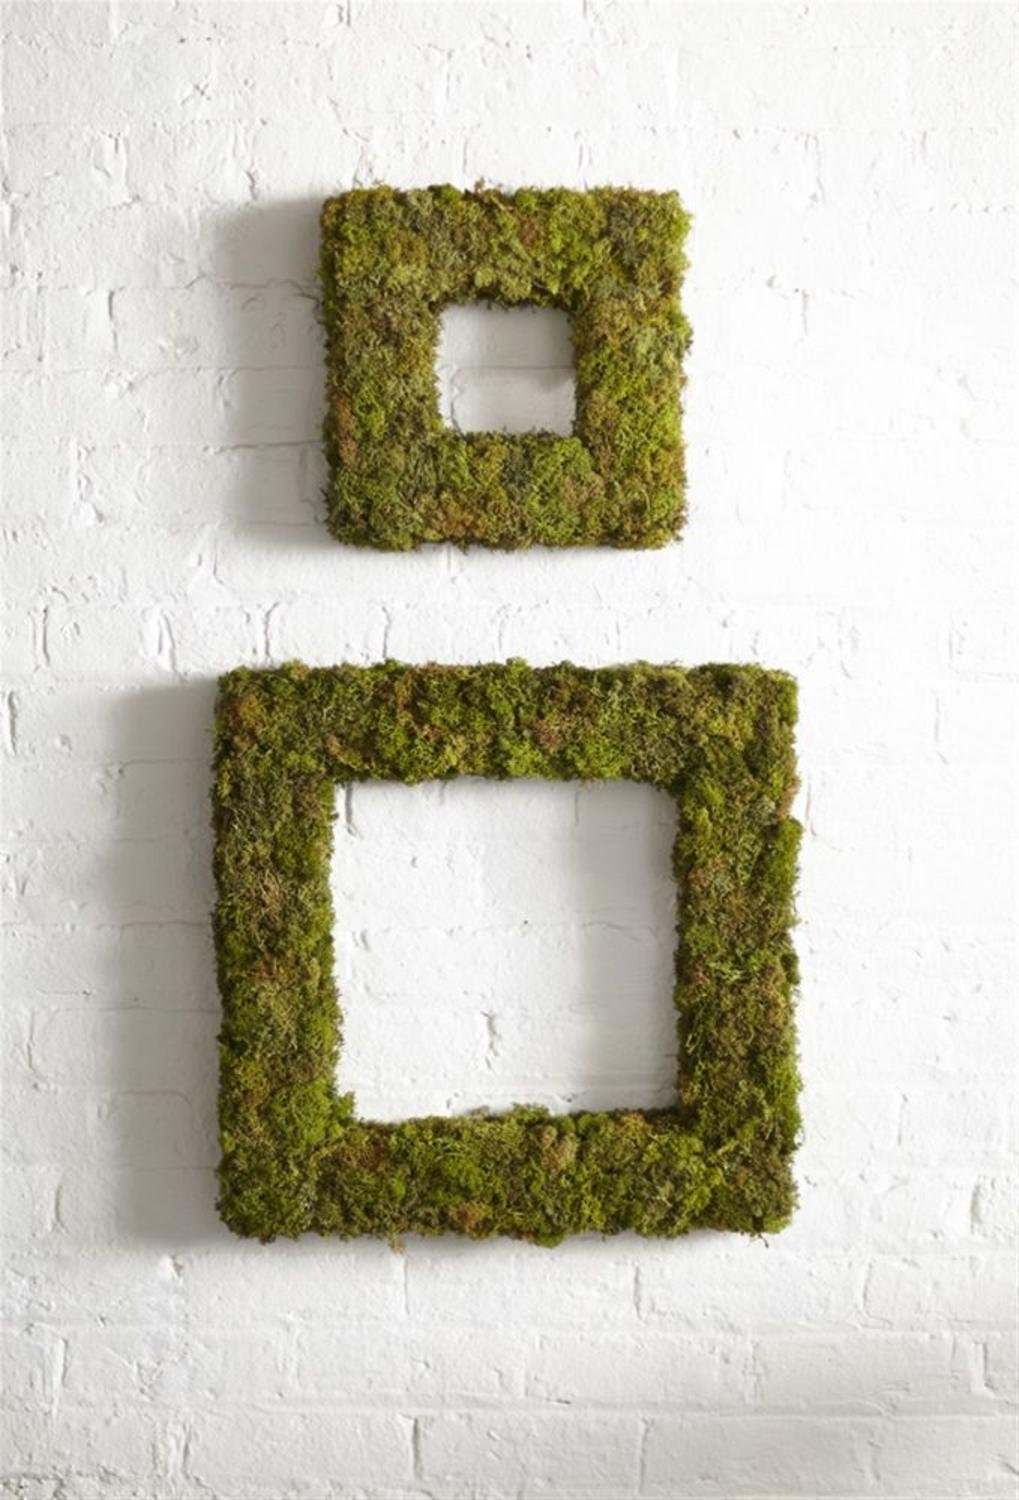 Melrose Pack of 4 Decorative Textured Artificial Moss Inspired Square Wreaths 13'', 21''